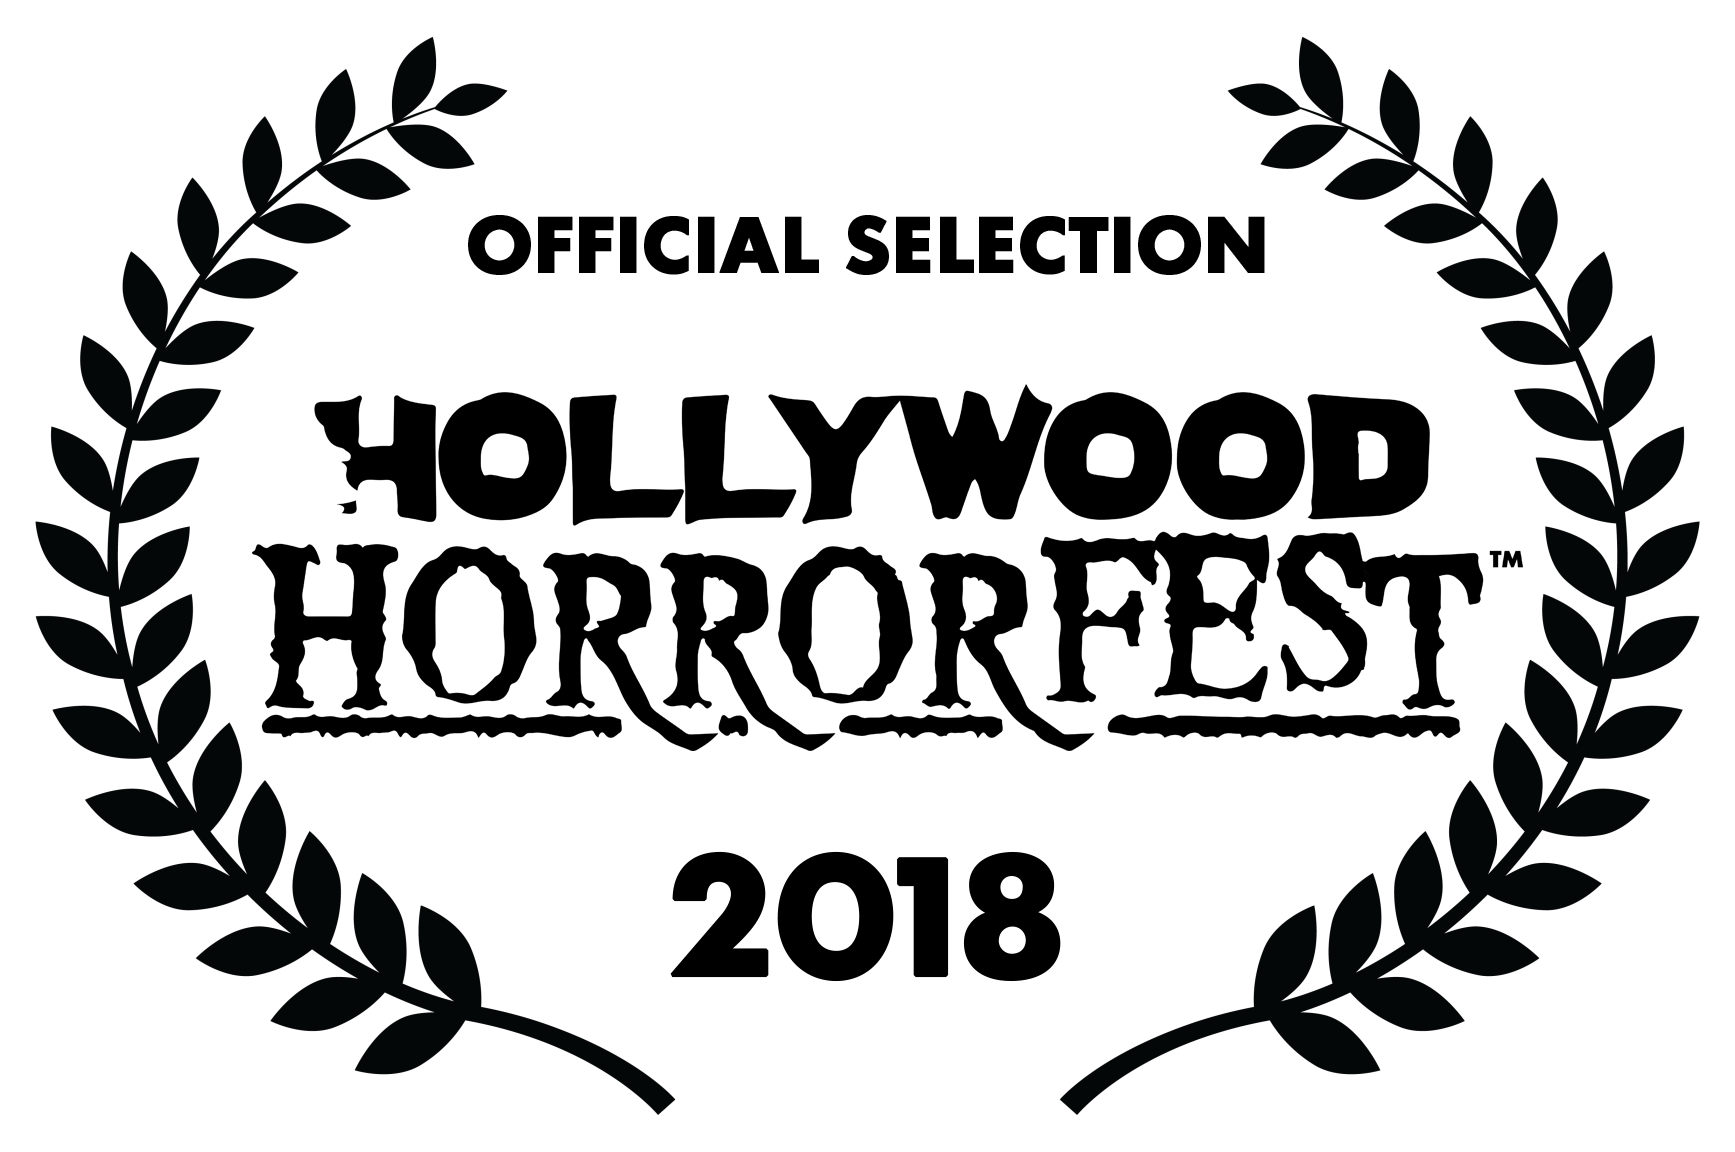 Hollywood Horrorfest official selection 2018